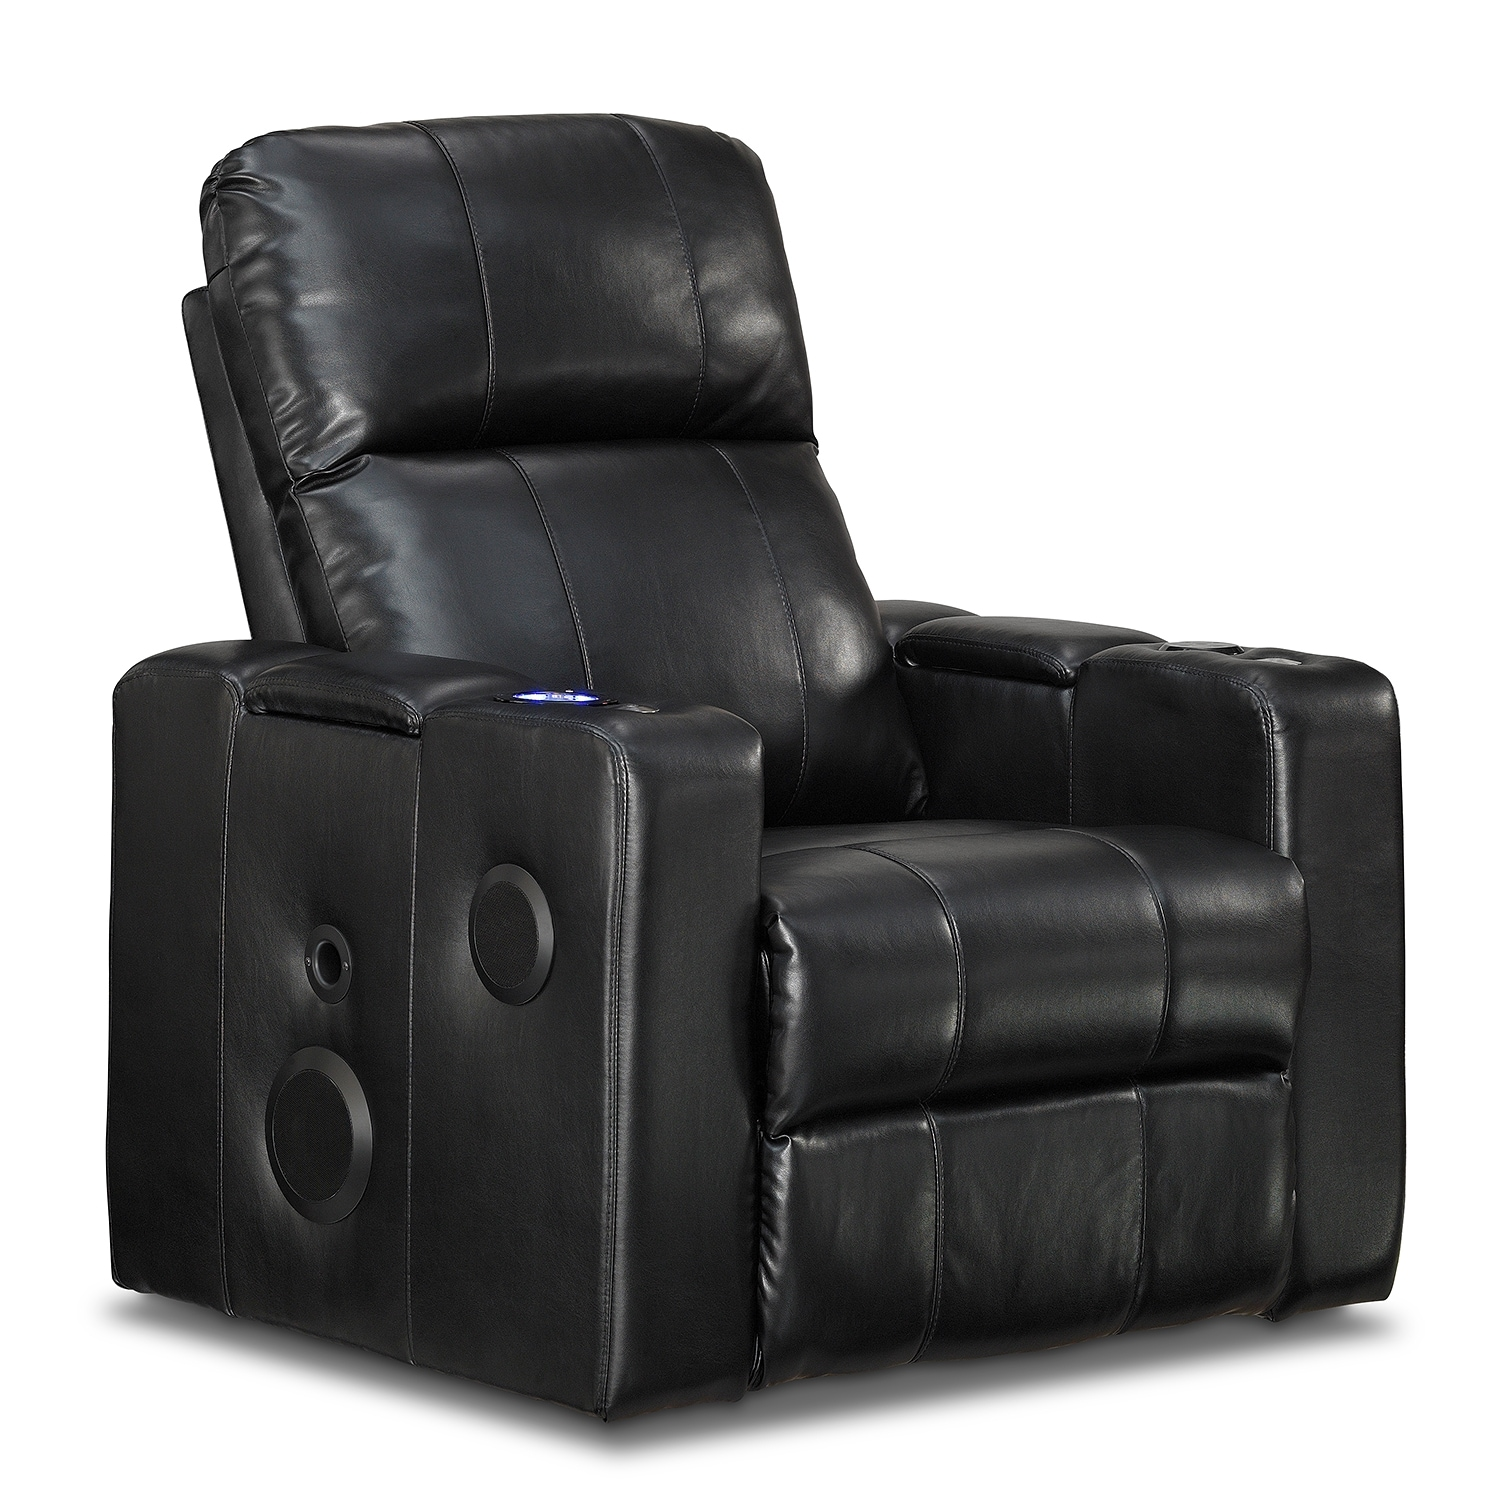 recliner chairs movie theater zero gravity on sale furnishings for every room online and store furniture